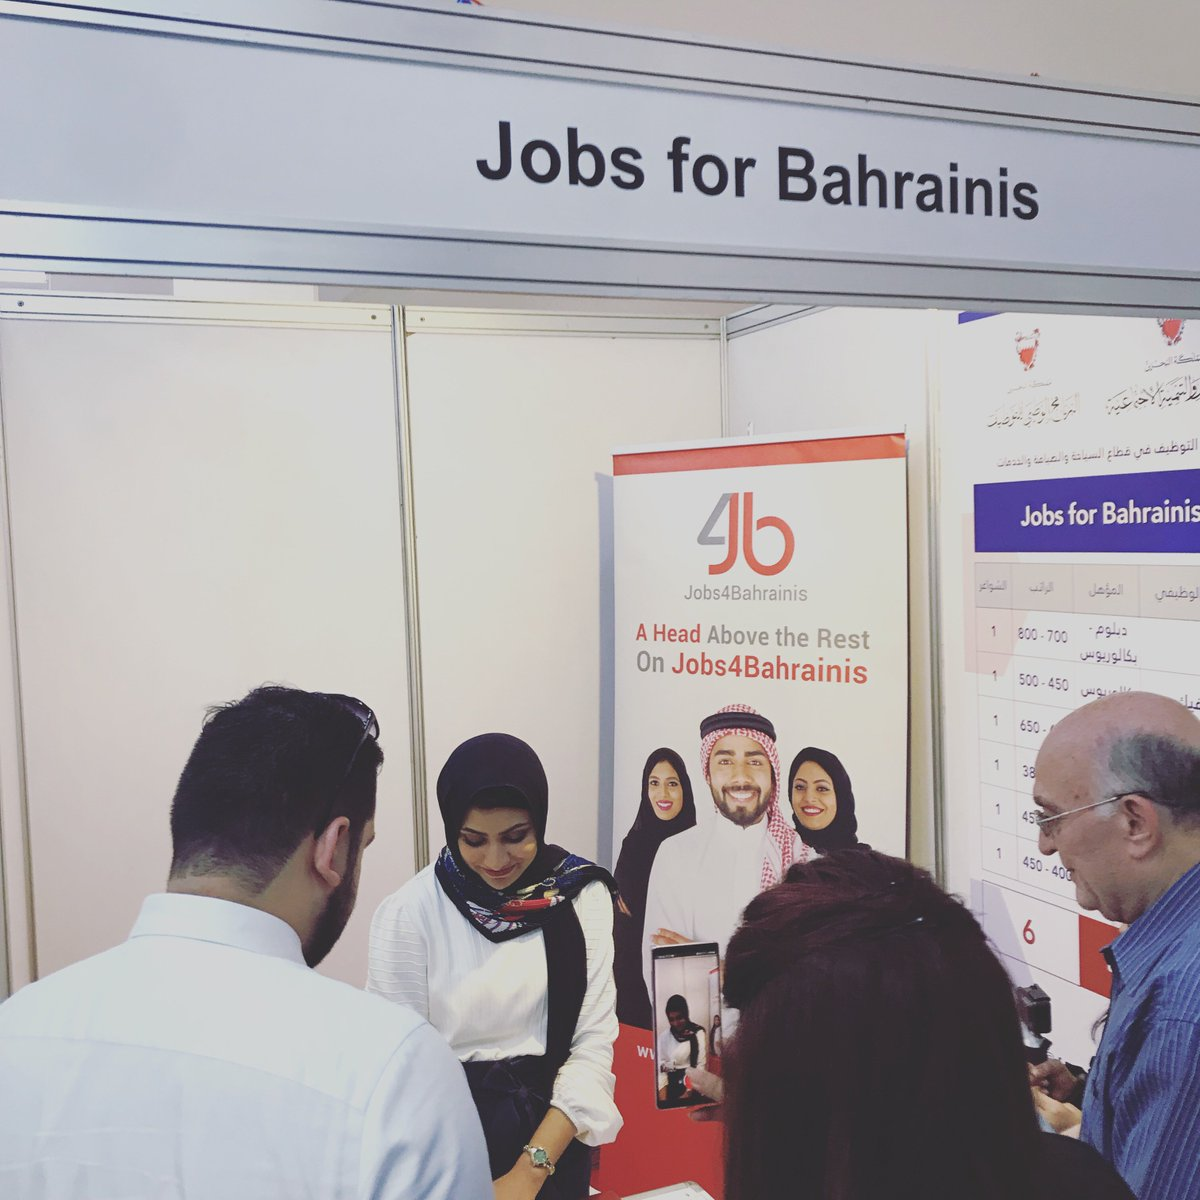 jobs4bahrainis hashtag on Twitter